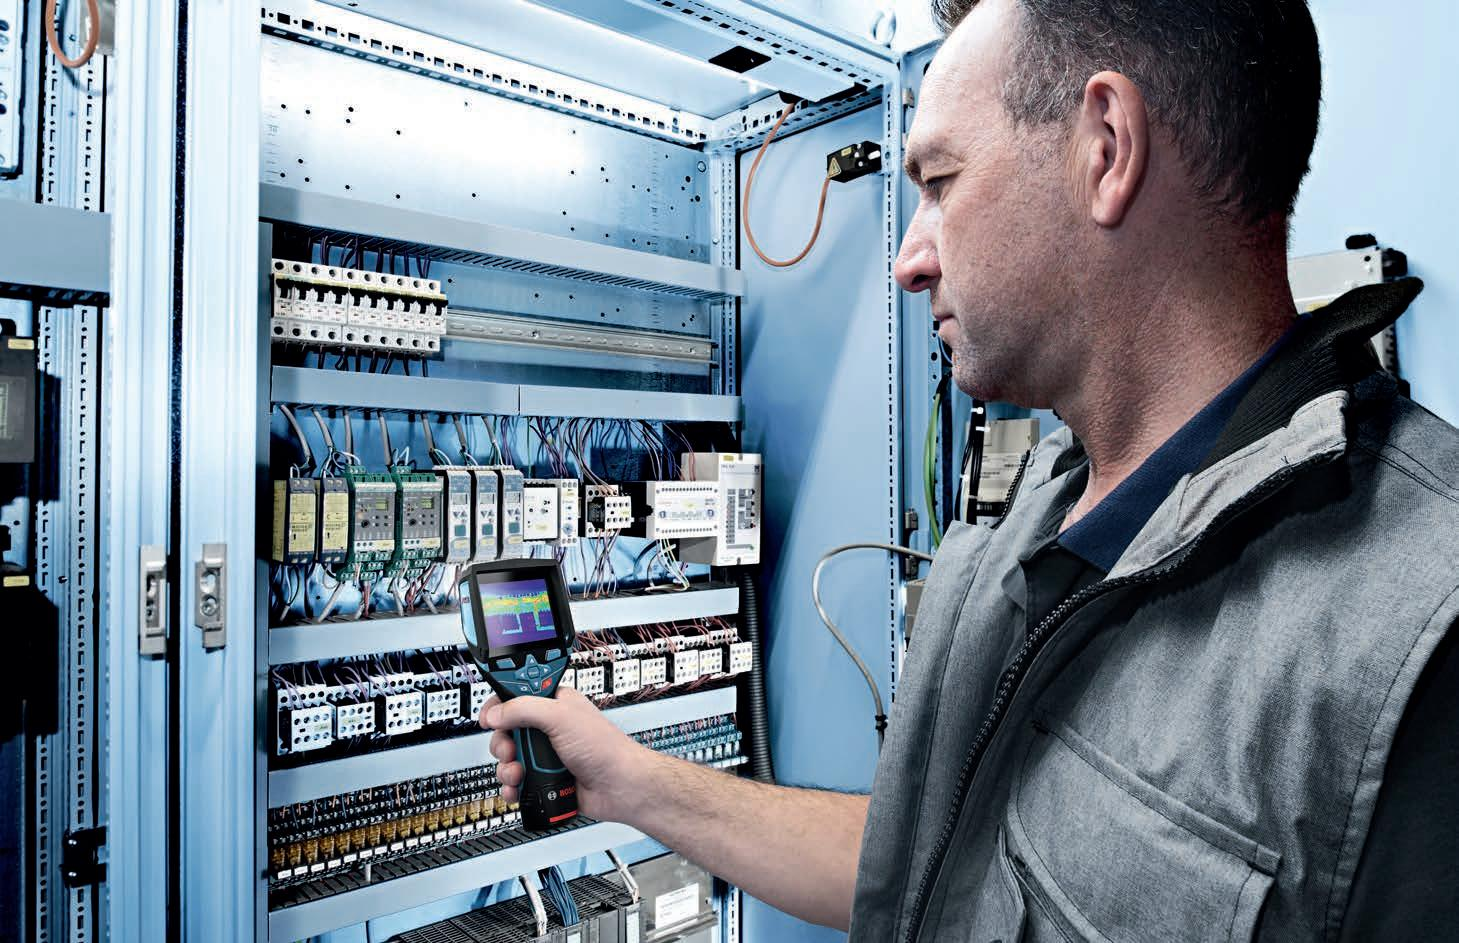 Page 36 of Bosch's GTC 400 C Professional Thermal Camera offers a variety of great functions